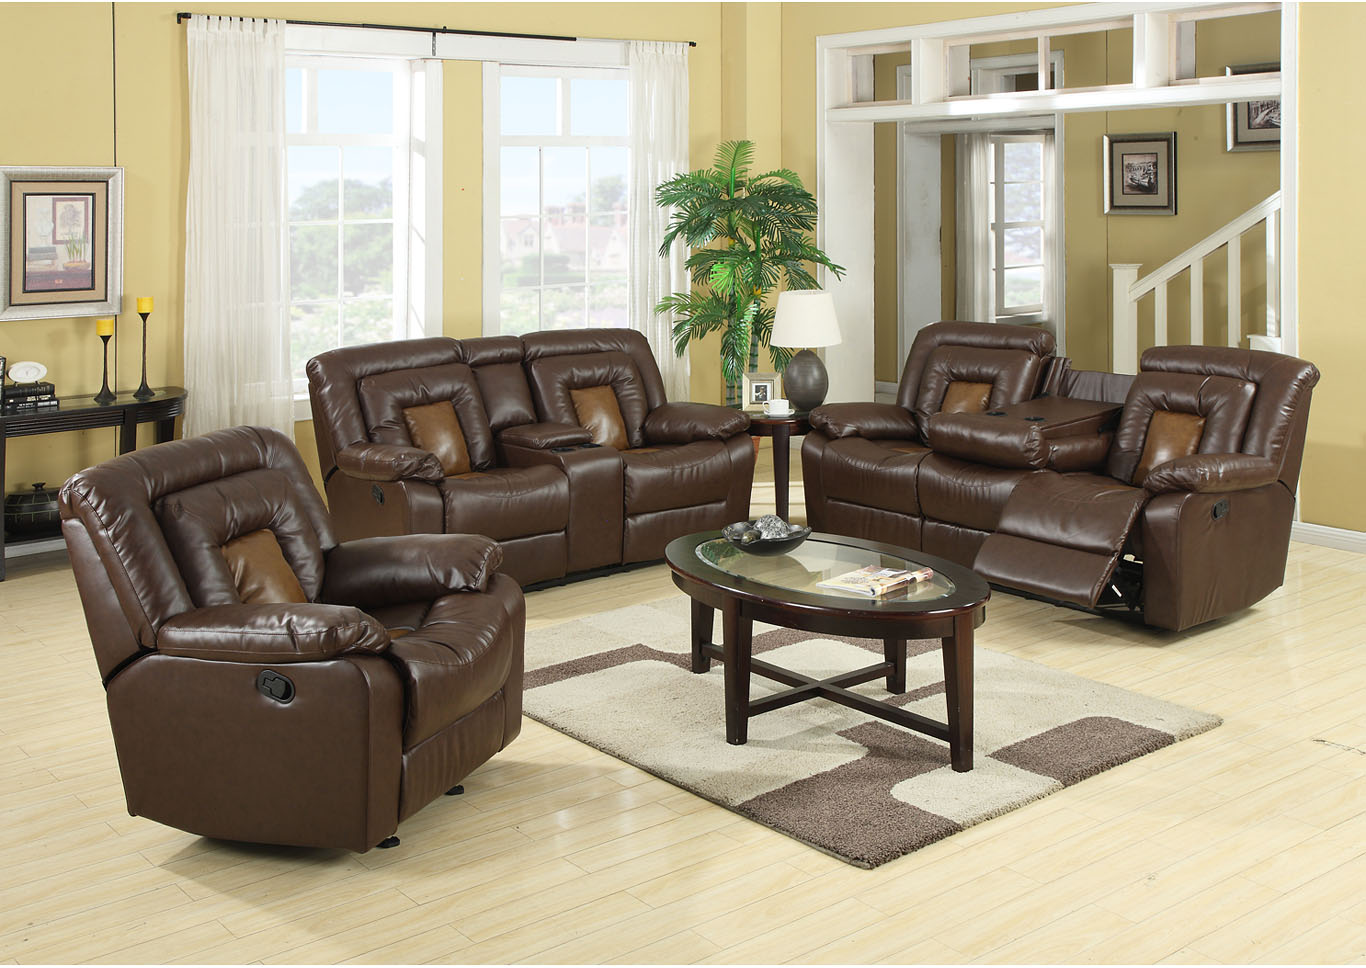 Cobra Brown Reclining Sofa,Global Trading